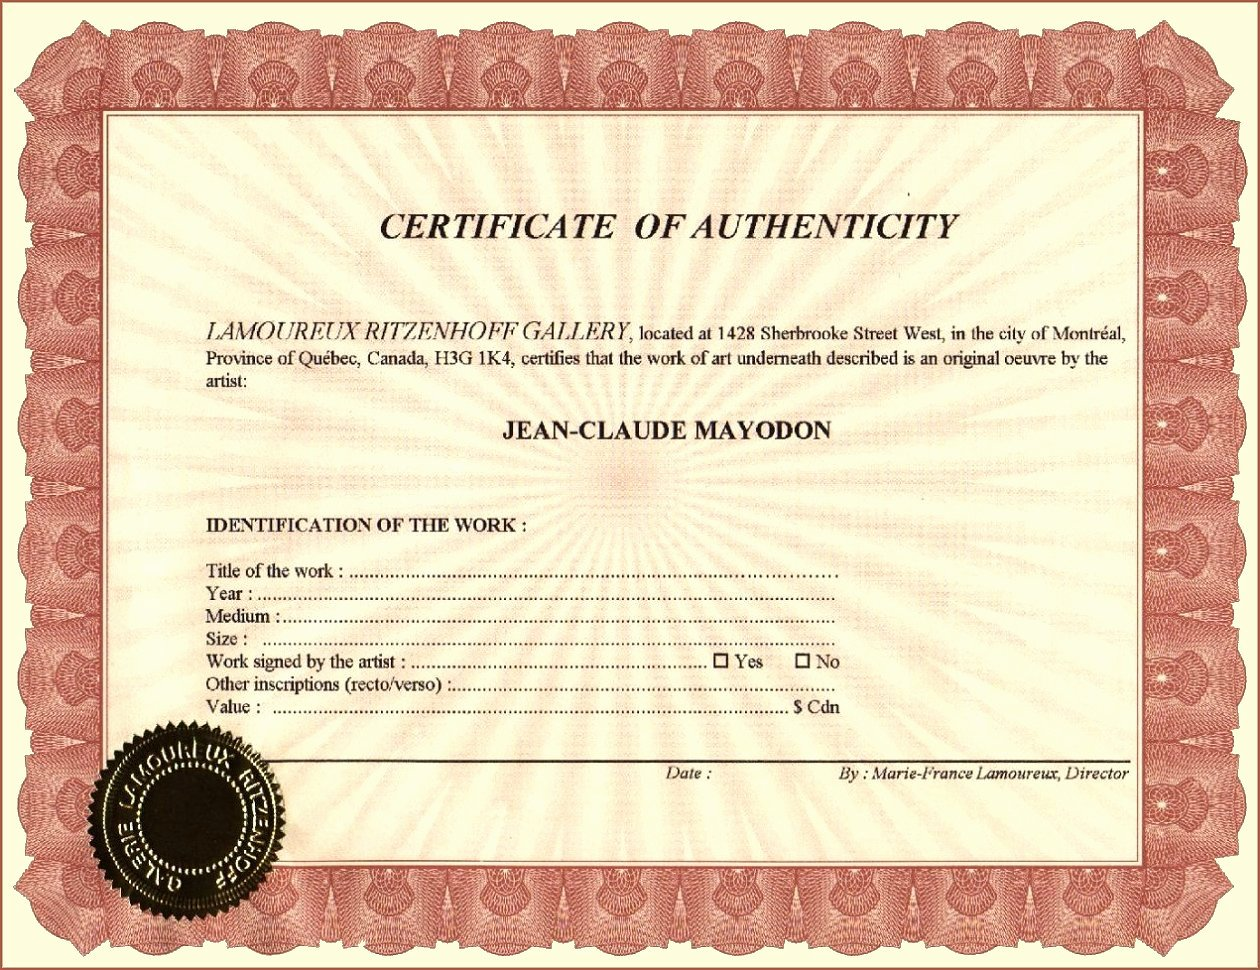 Certificate Of Authenticity form Luxury Galerie Lamoureux Ritzenhoff Certificate Of Authenticity